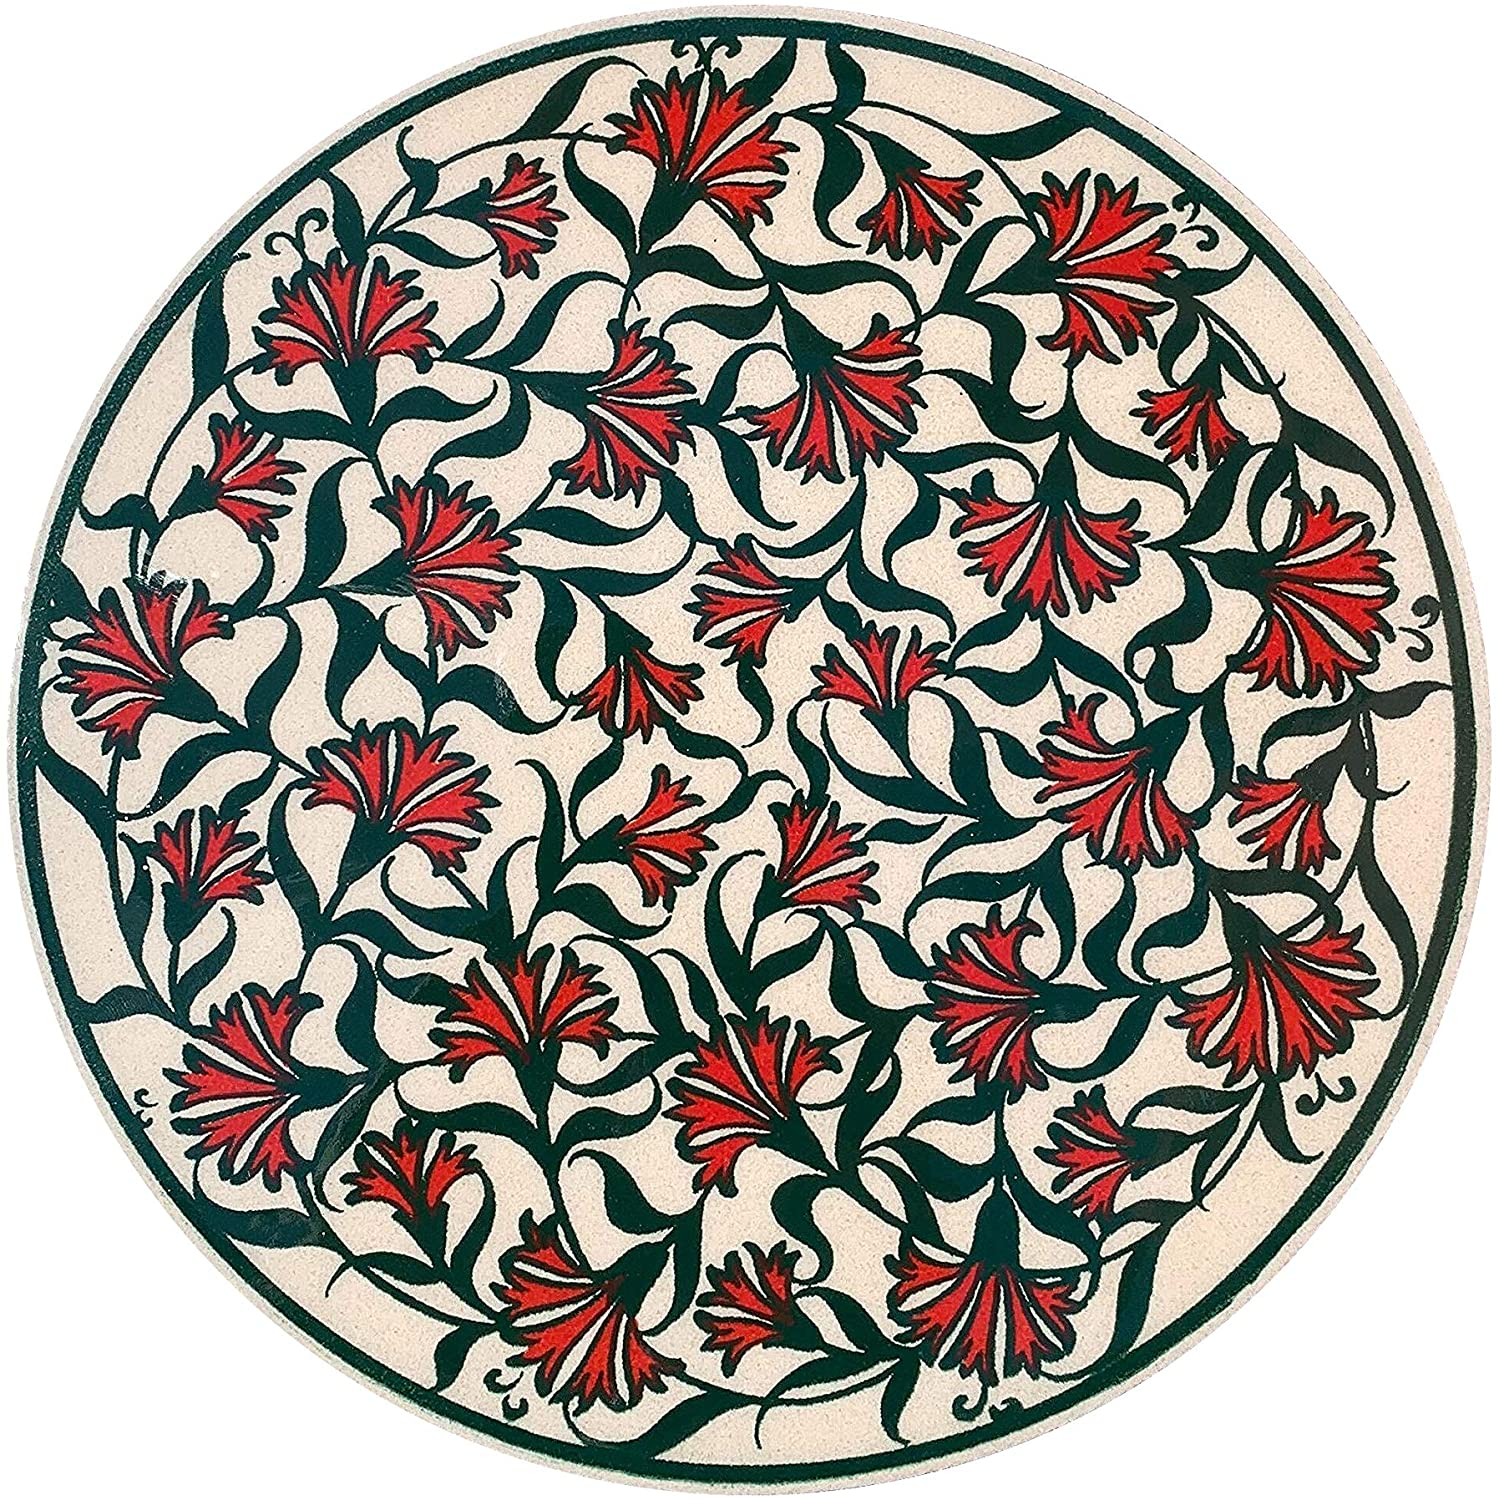 EuroHand Lina Turkish Handmade Ceramic Trivet Pot Holder -Ottoman Decorative Hot Pots Dishes and Pans Trivets Coasters for Tables - Scratch Proof Heat Resistant Housewarming Hot Pads for Oven